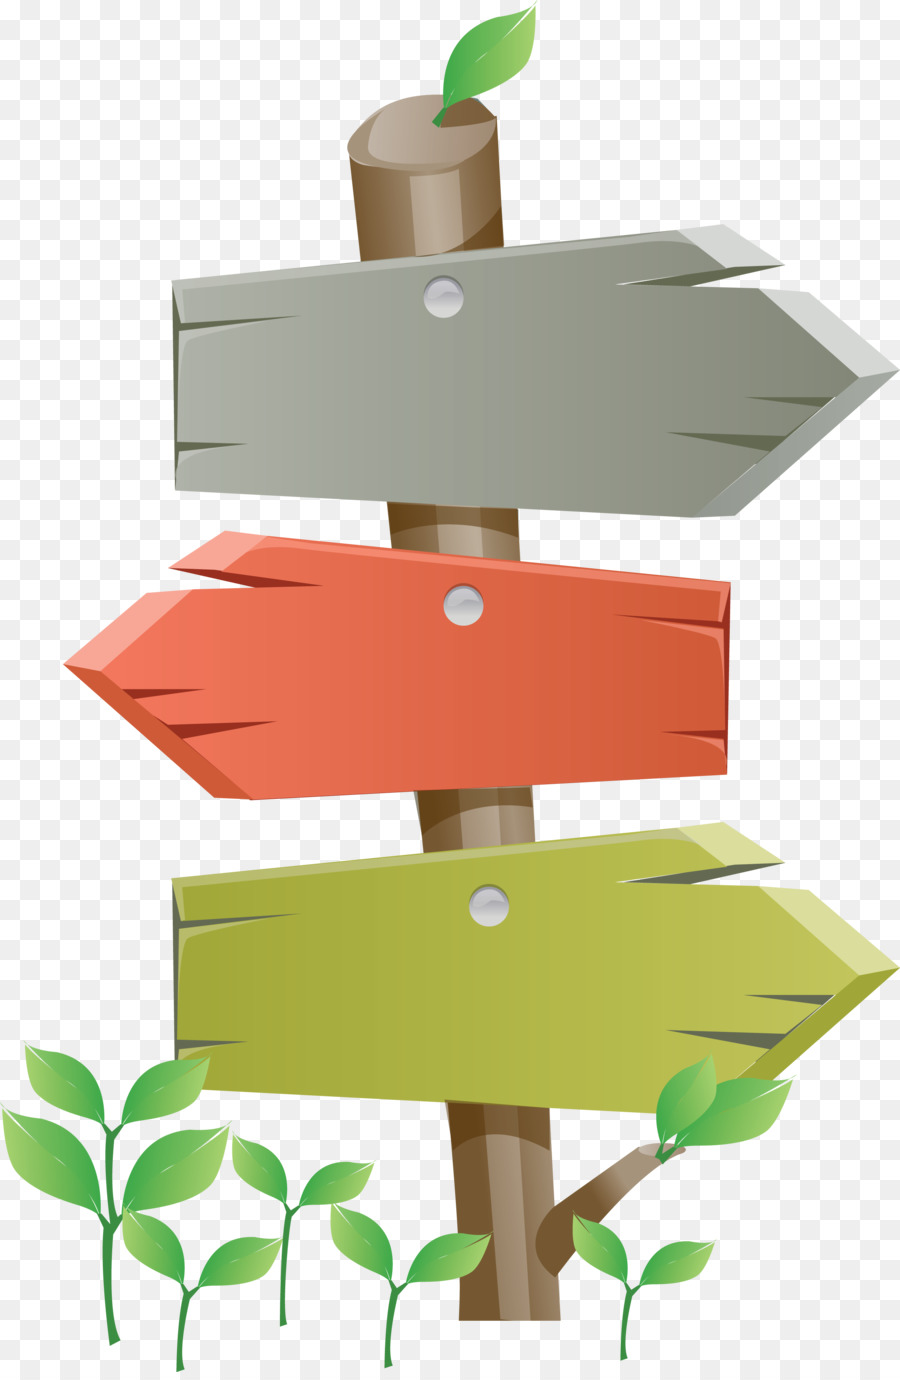 Direction position or indication. Arrows clipart signboard